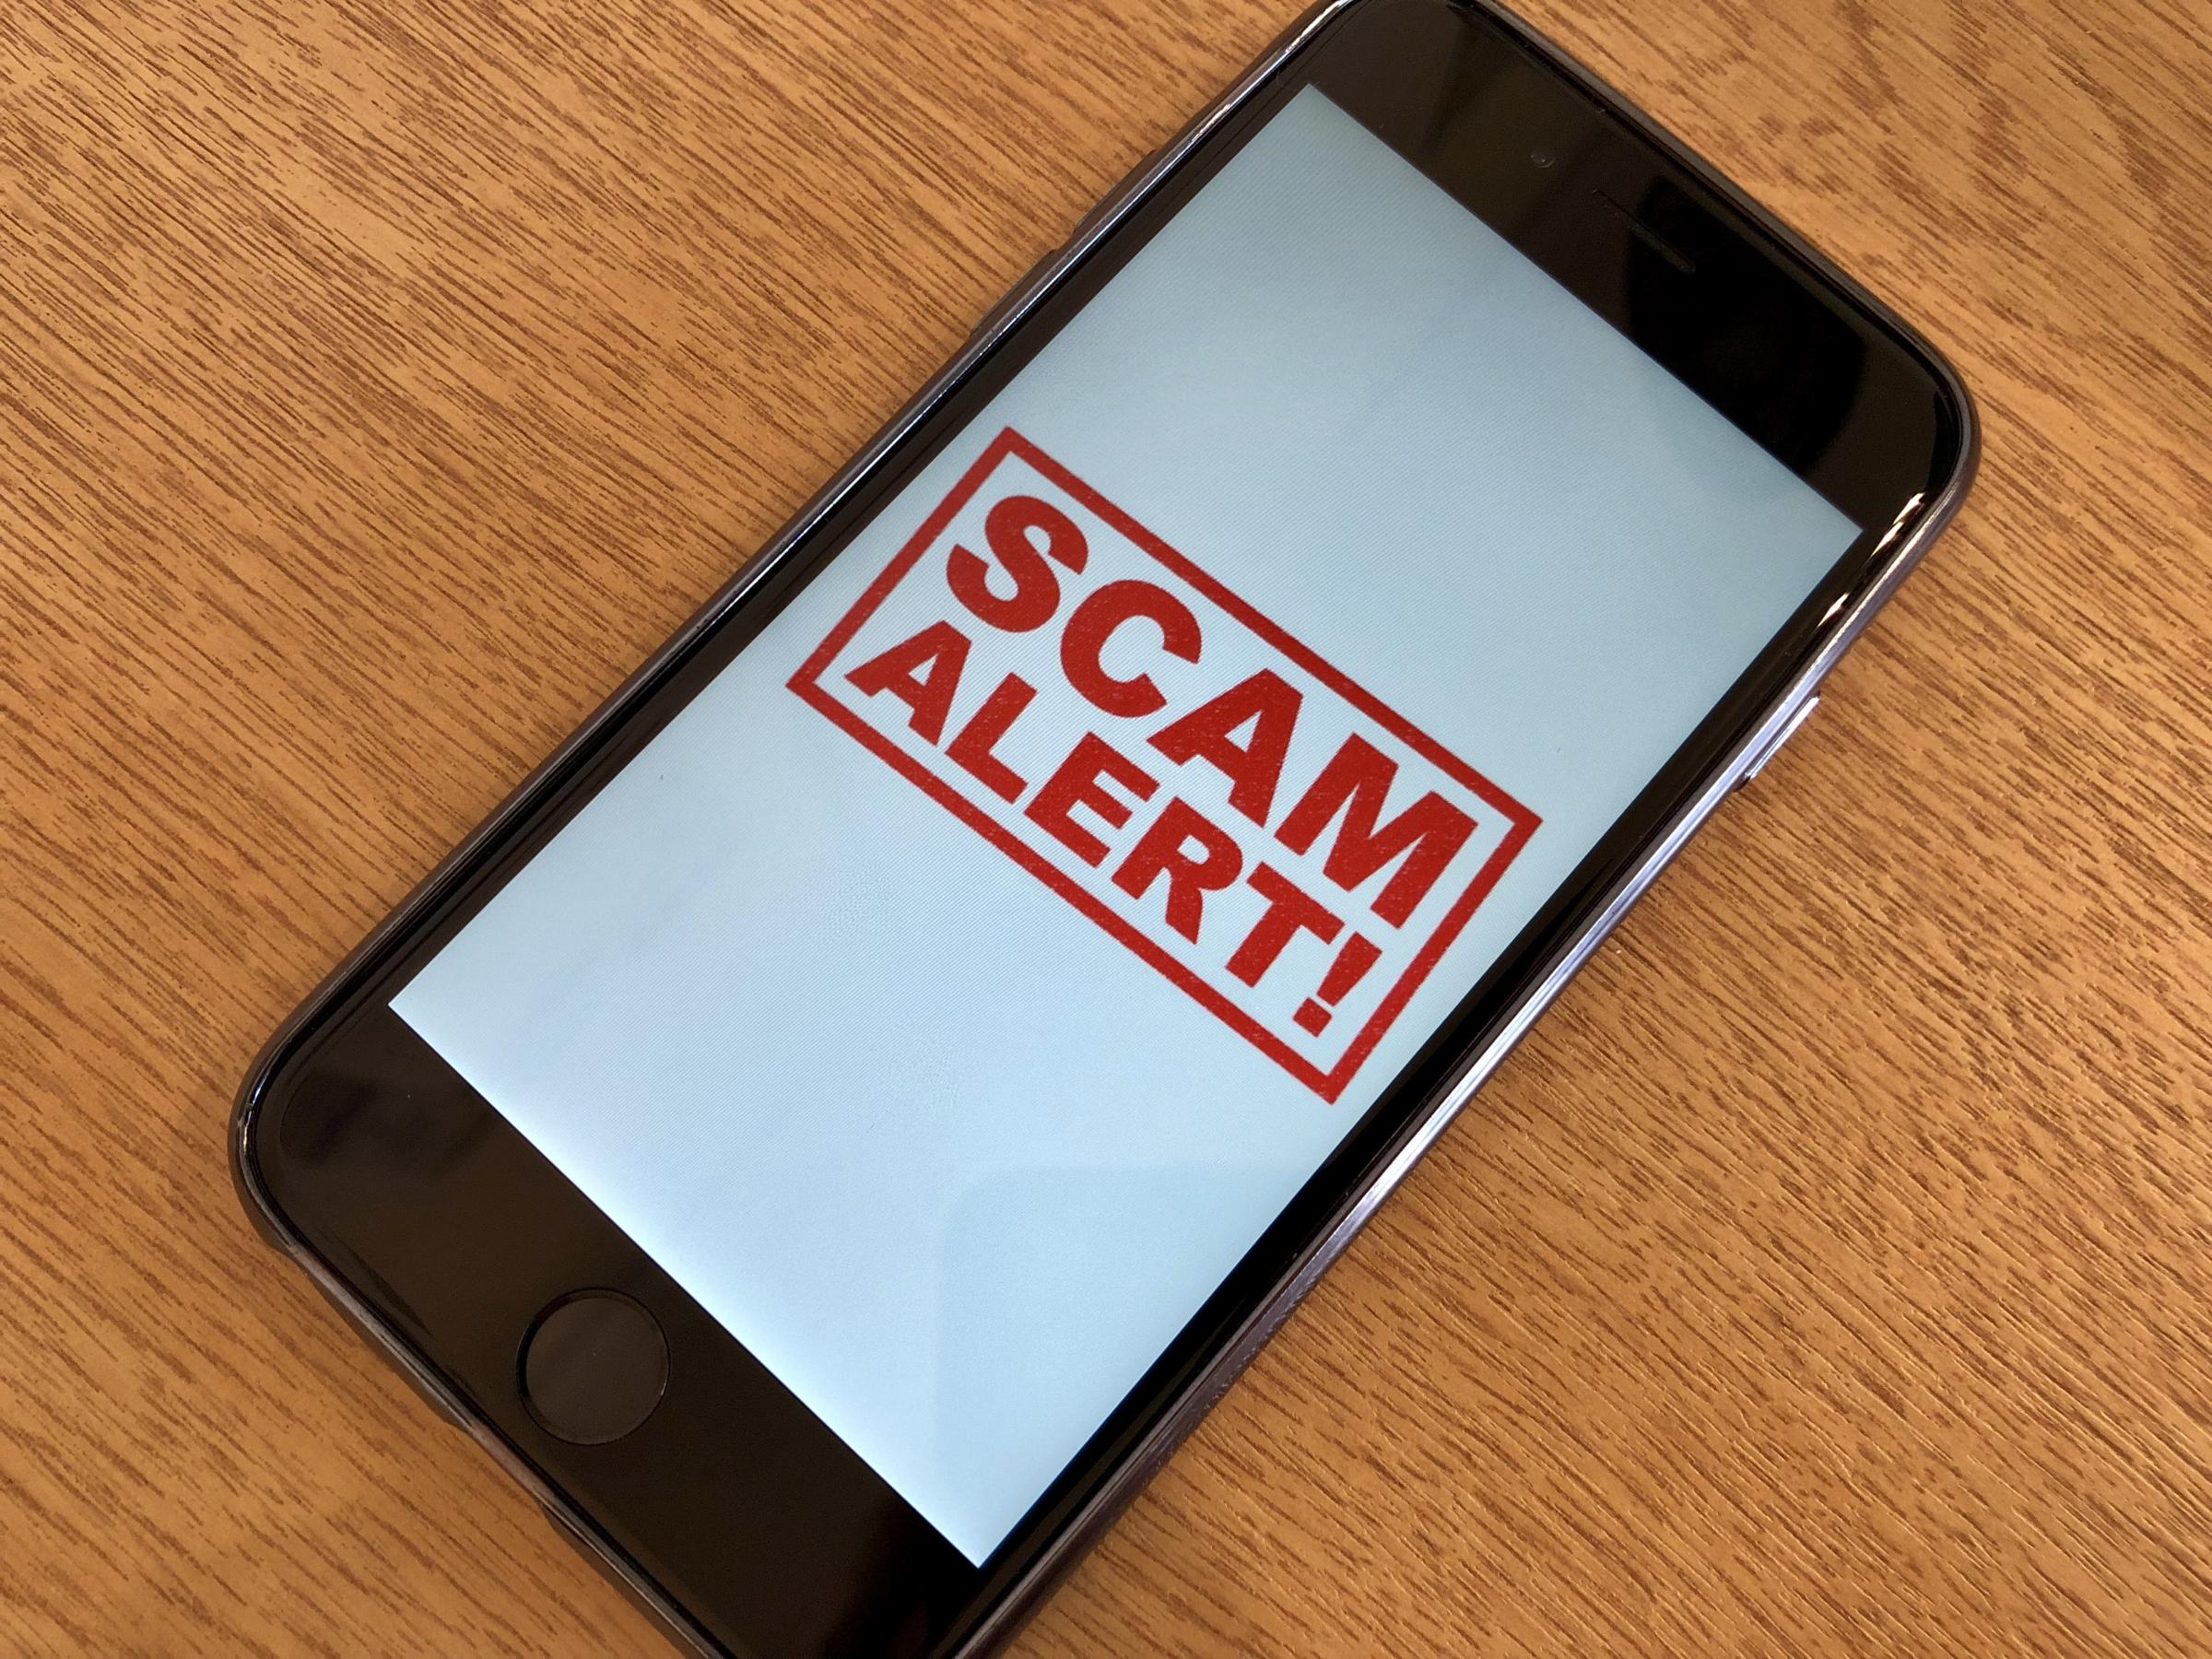 HMRC issues warning over phone scam